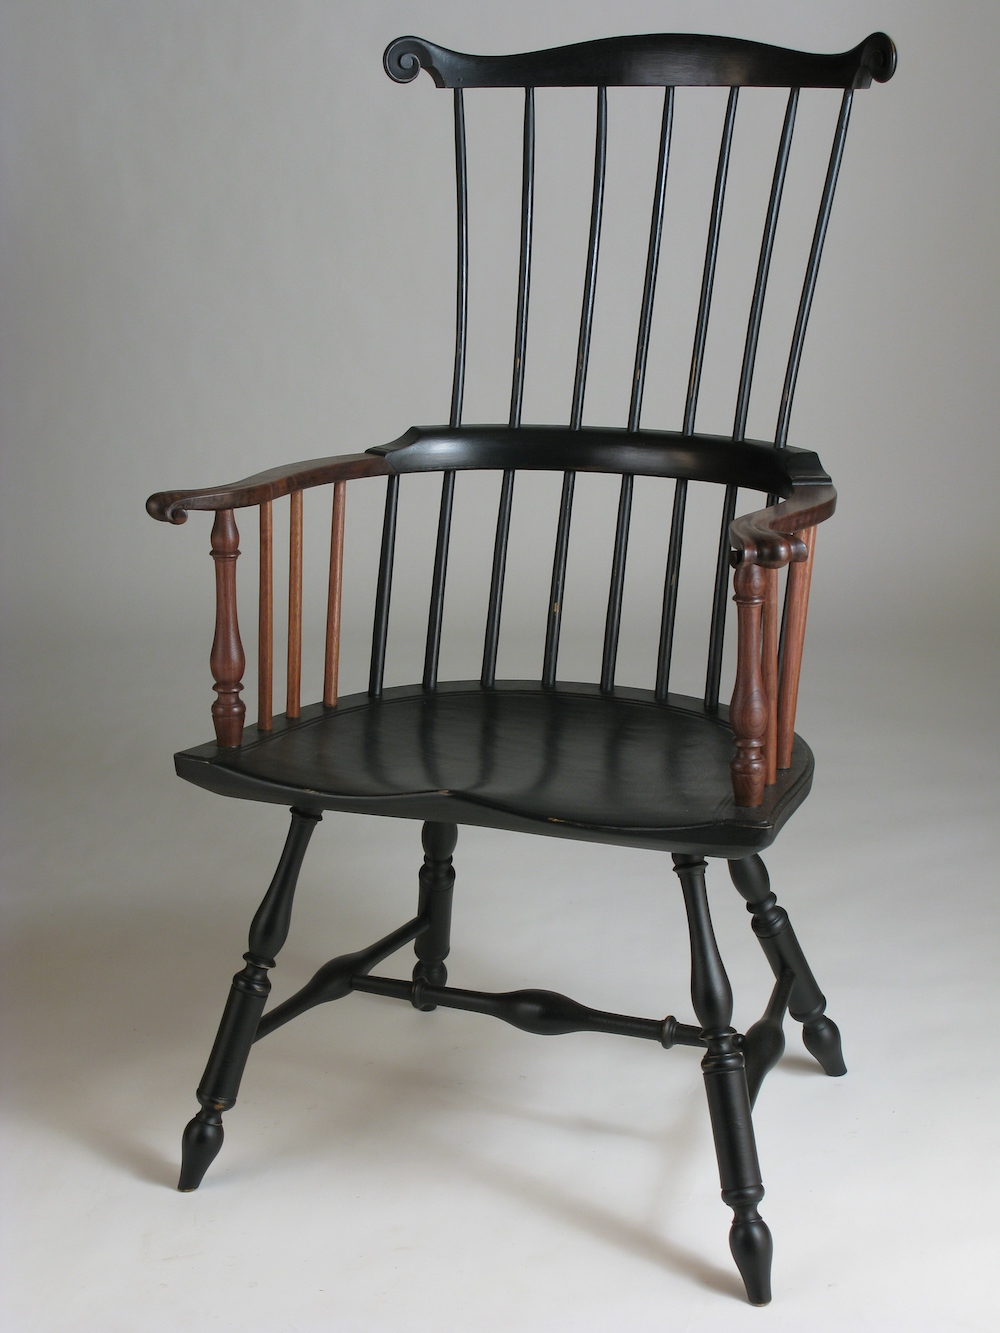 windsor chair with arms table cloths and covers for hire chairs united states mark soukup furniture makersor philadelphia heavy arm